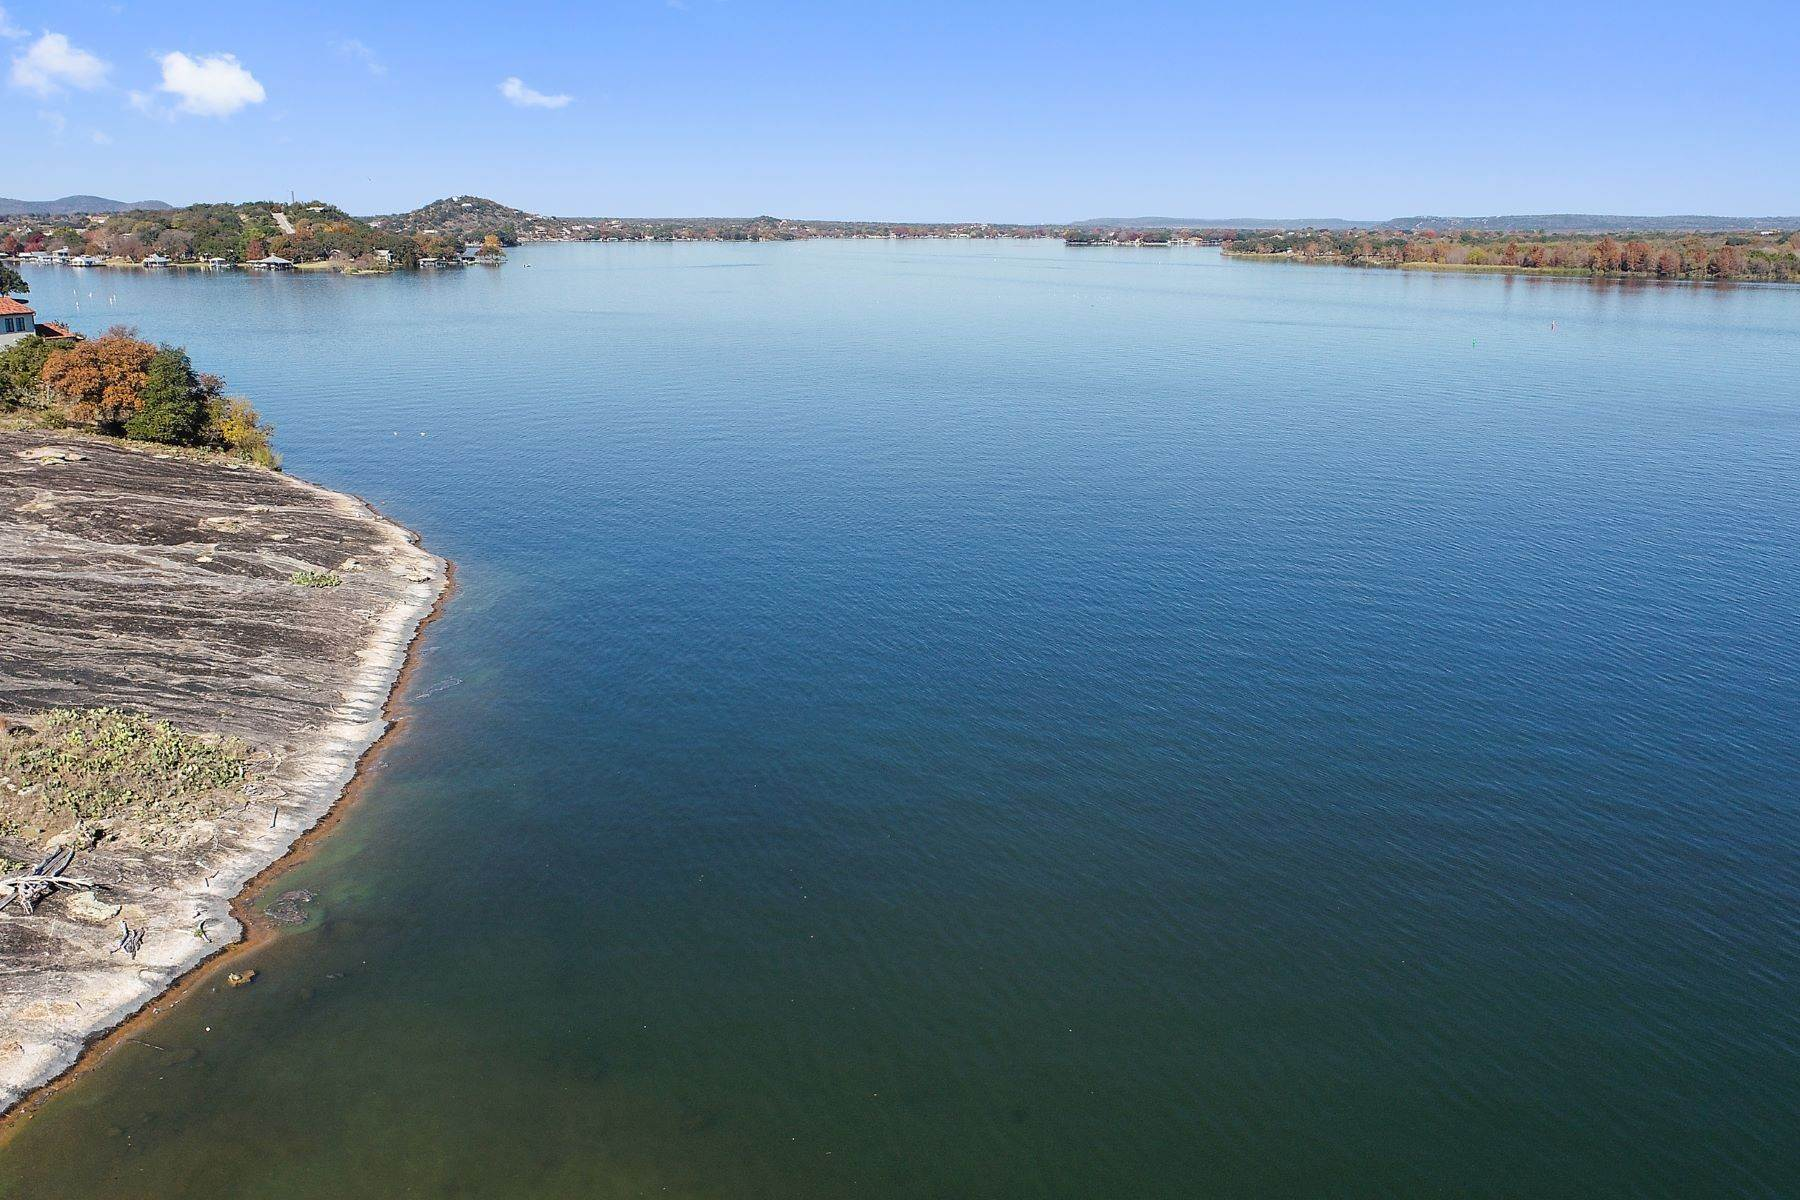 Land for Sale at 1501 Apache Tears, Horseshoe Bay, TX 78657 1501 Apache Tears Horseshoe Bay, Texas 78657 United States